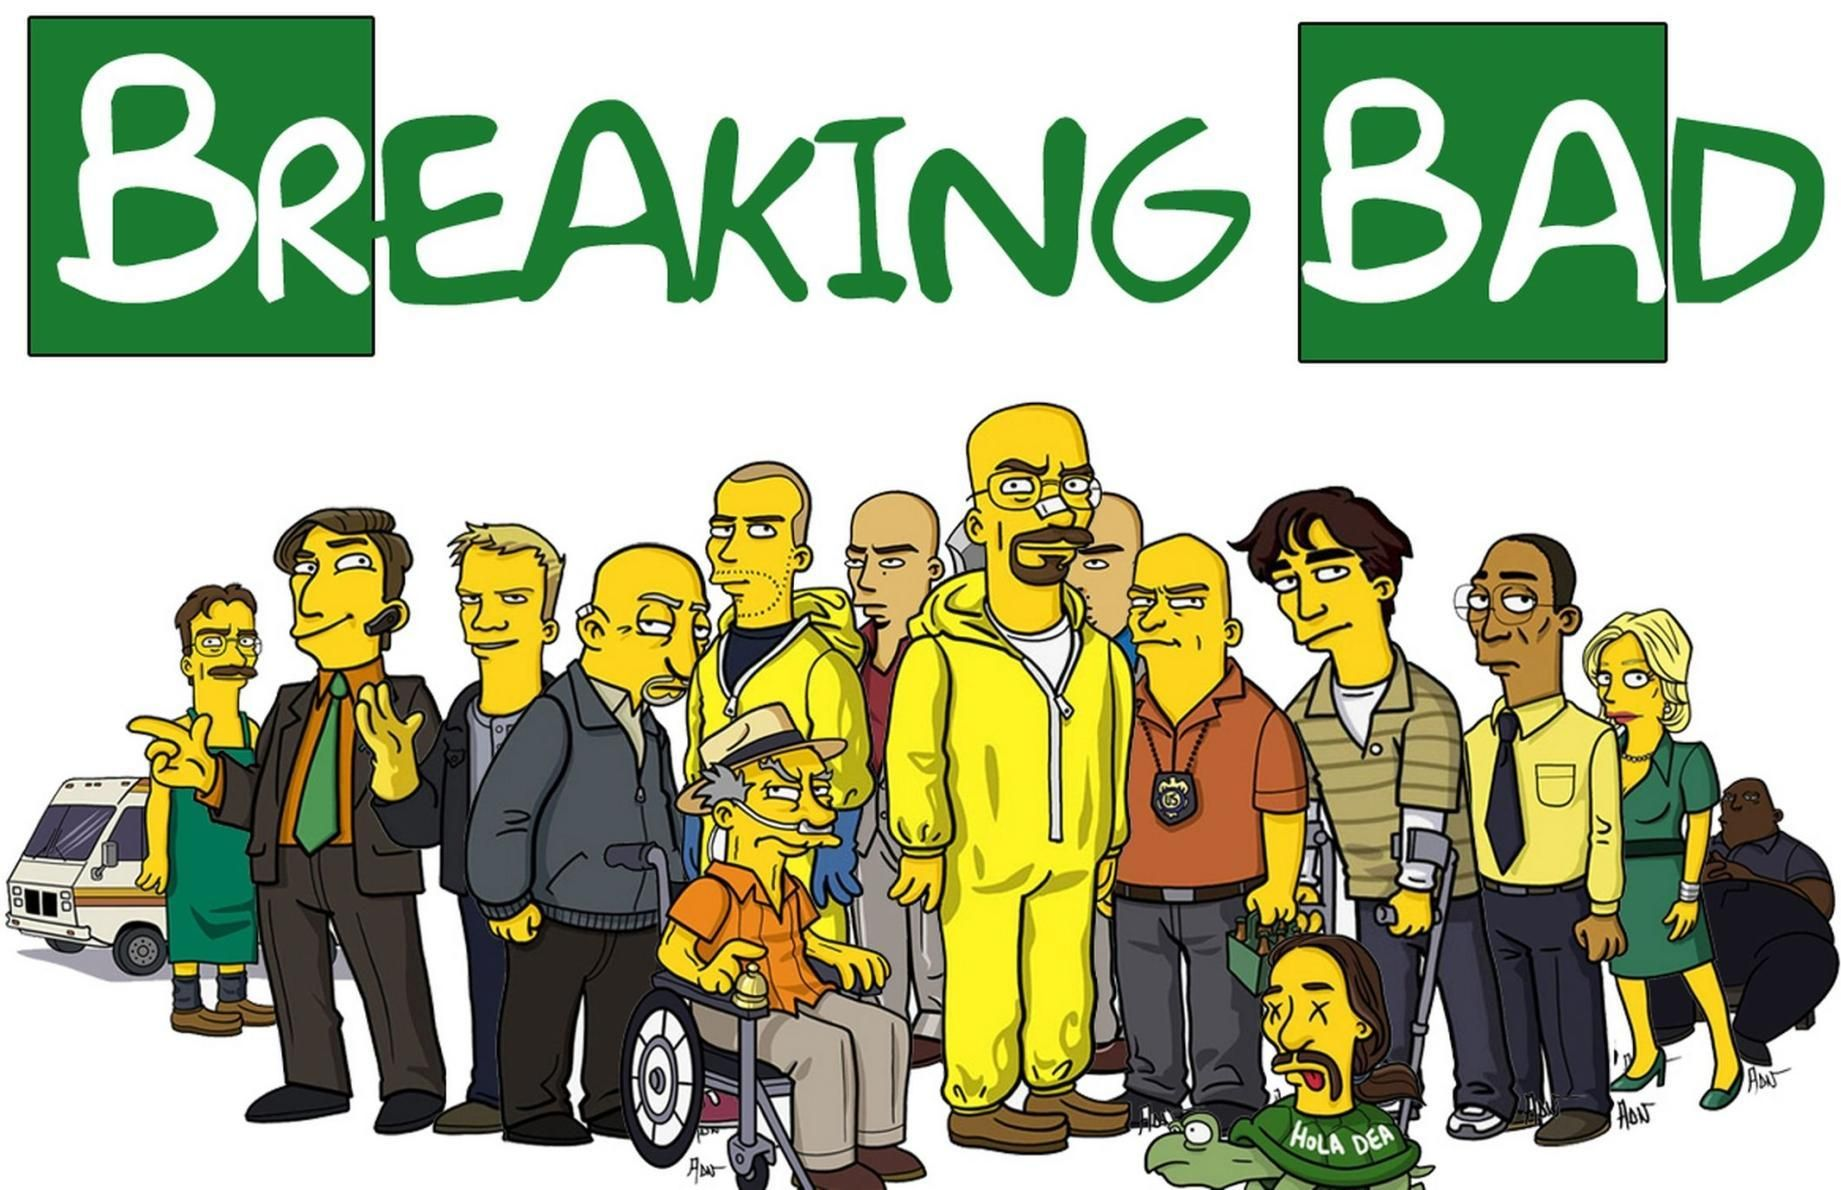 Bad Serie Breaking Bad Serie De Tv 2008 Filmaffinity Fun En